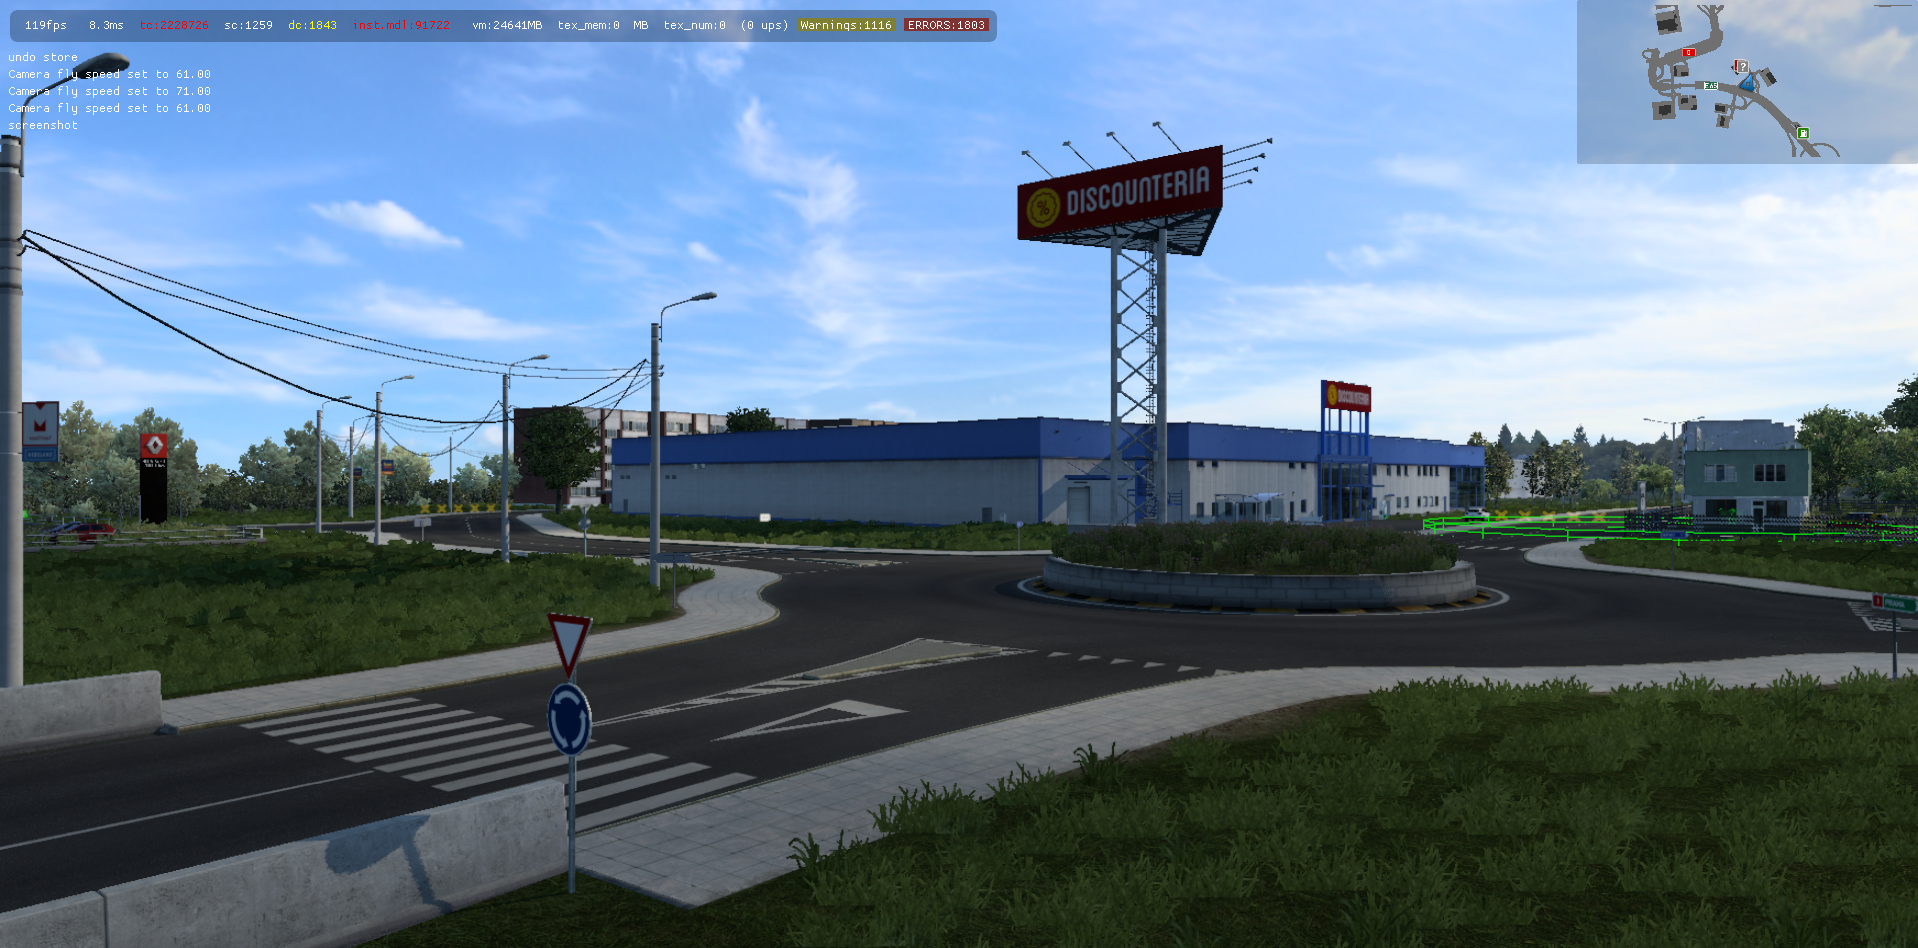 ets2_20210612_143532_00.png